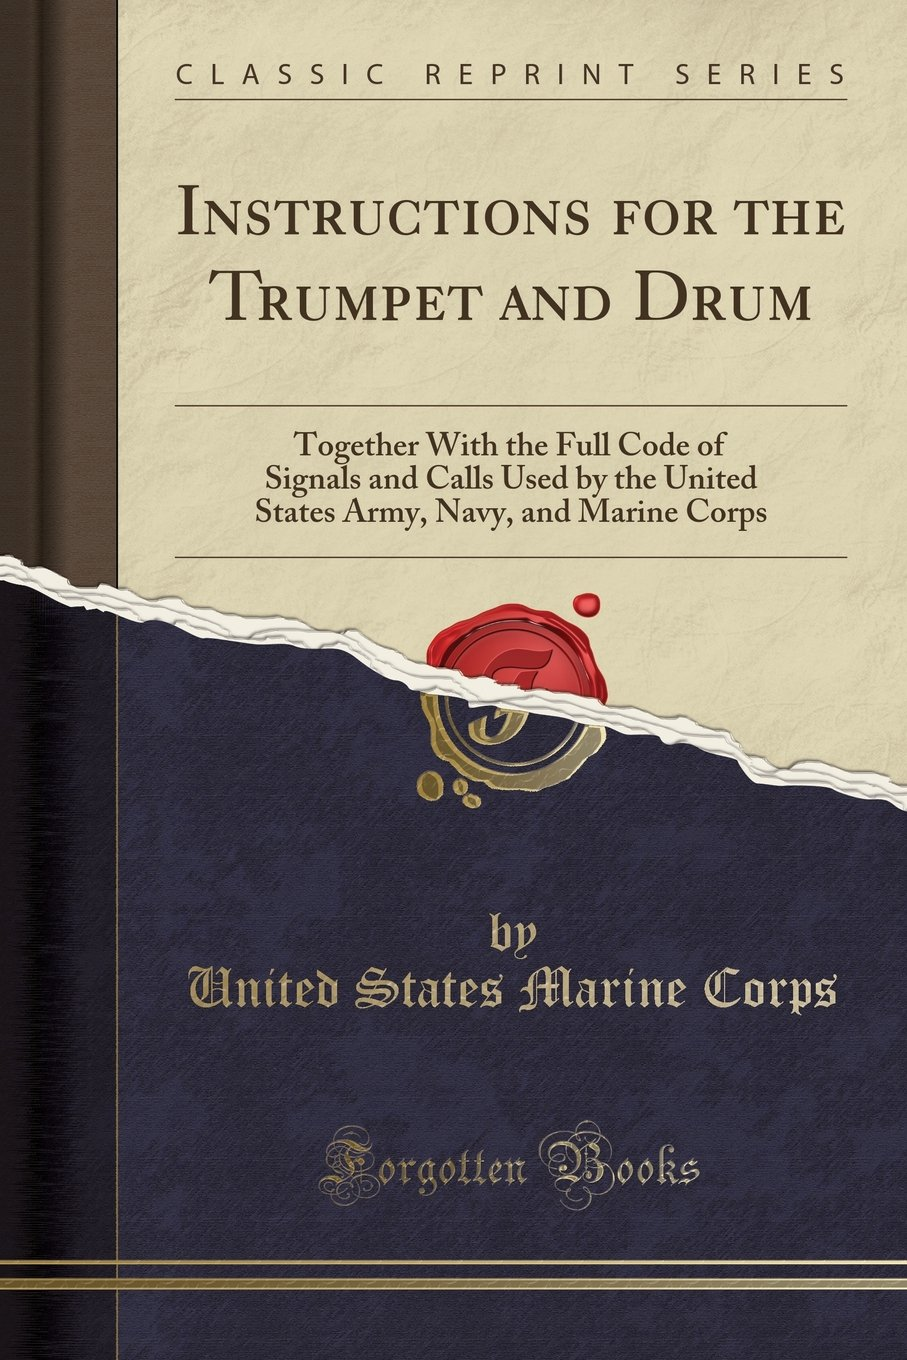 Instructions for the Trumpet and Drum: Together With the Full Code of Signals and Calls Used by the United States Army, Navy, and Marine Corps (Classic Reprint)